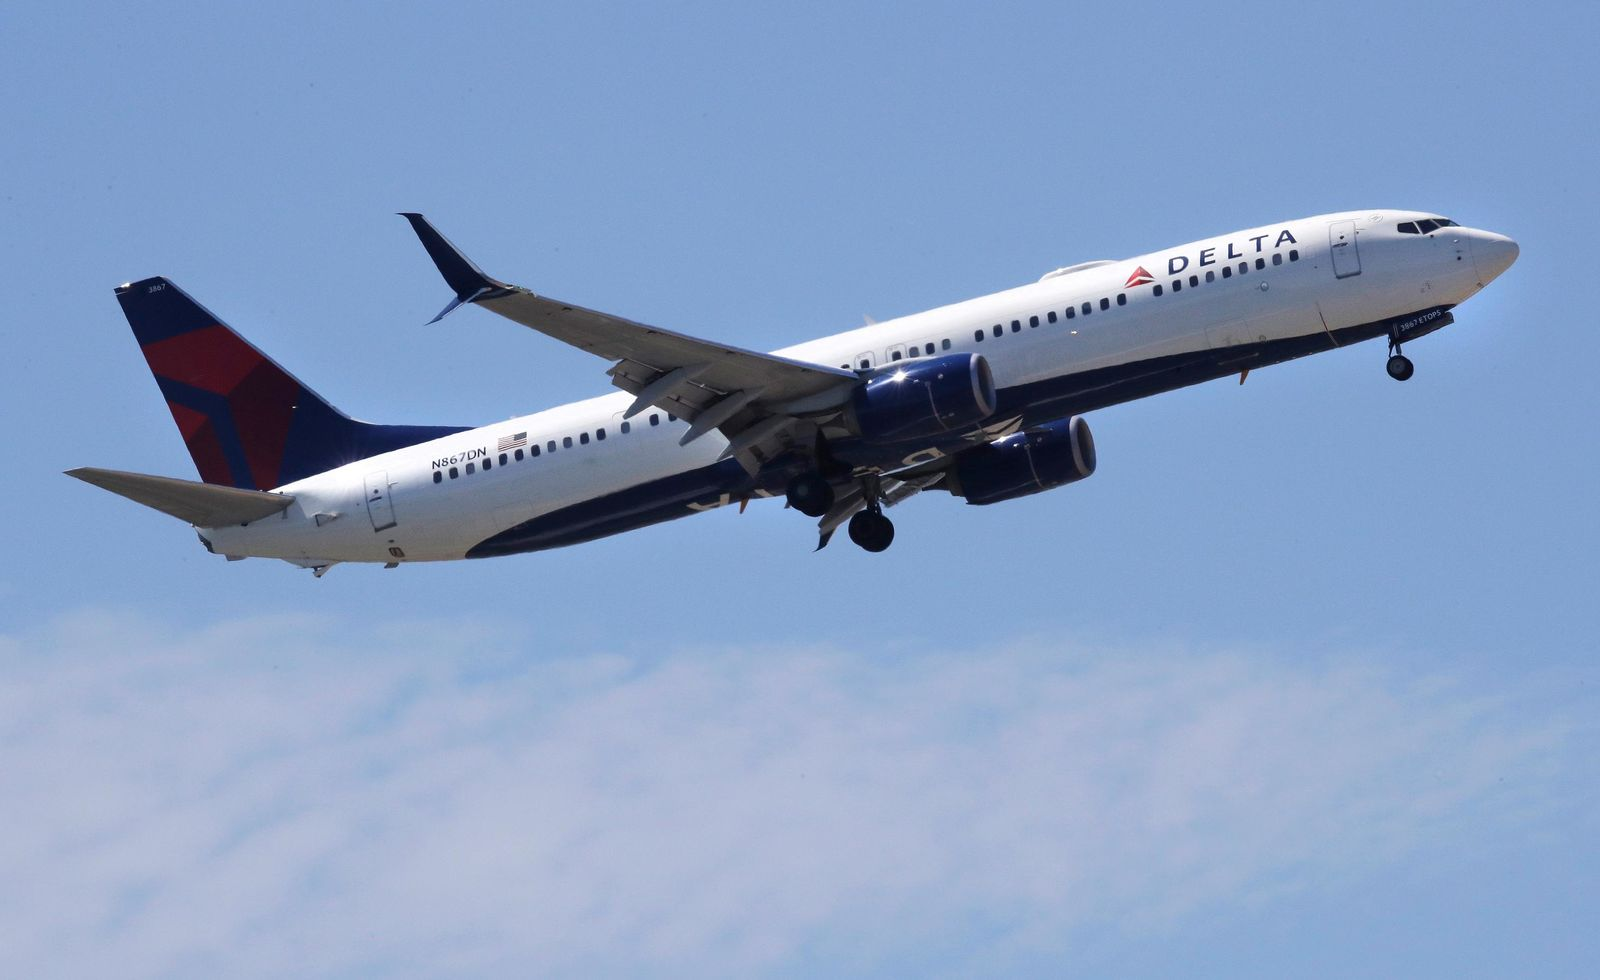 FILE- In this May 24, 2018, file photo a Delta Air Lines passenger jet plane, a Boeing 737-900 model, approaches Logan Airport in Boston. (AP Photo/Charles Krupa, File)